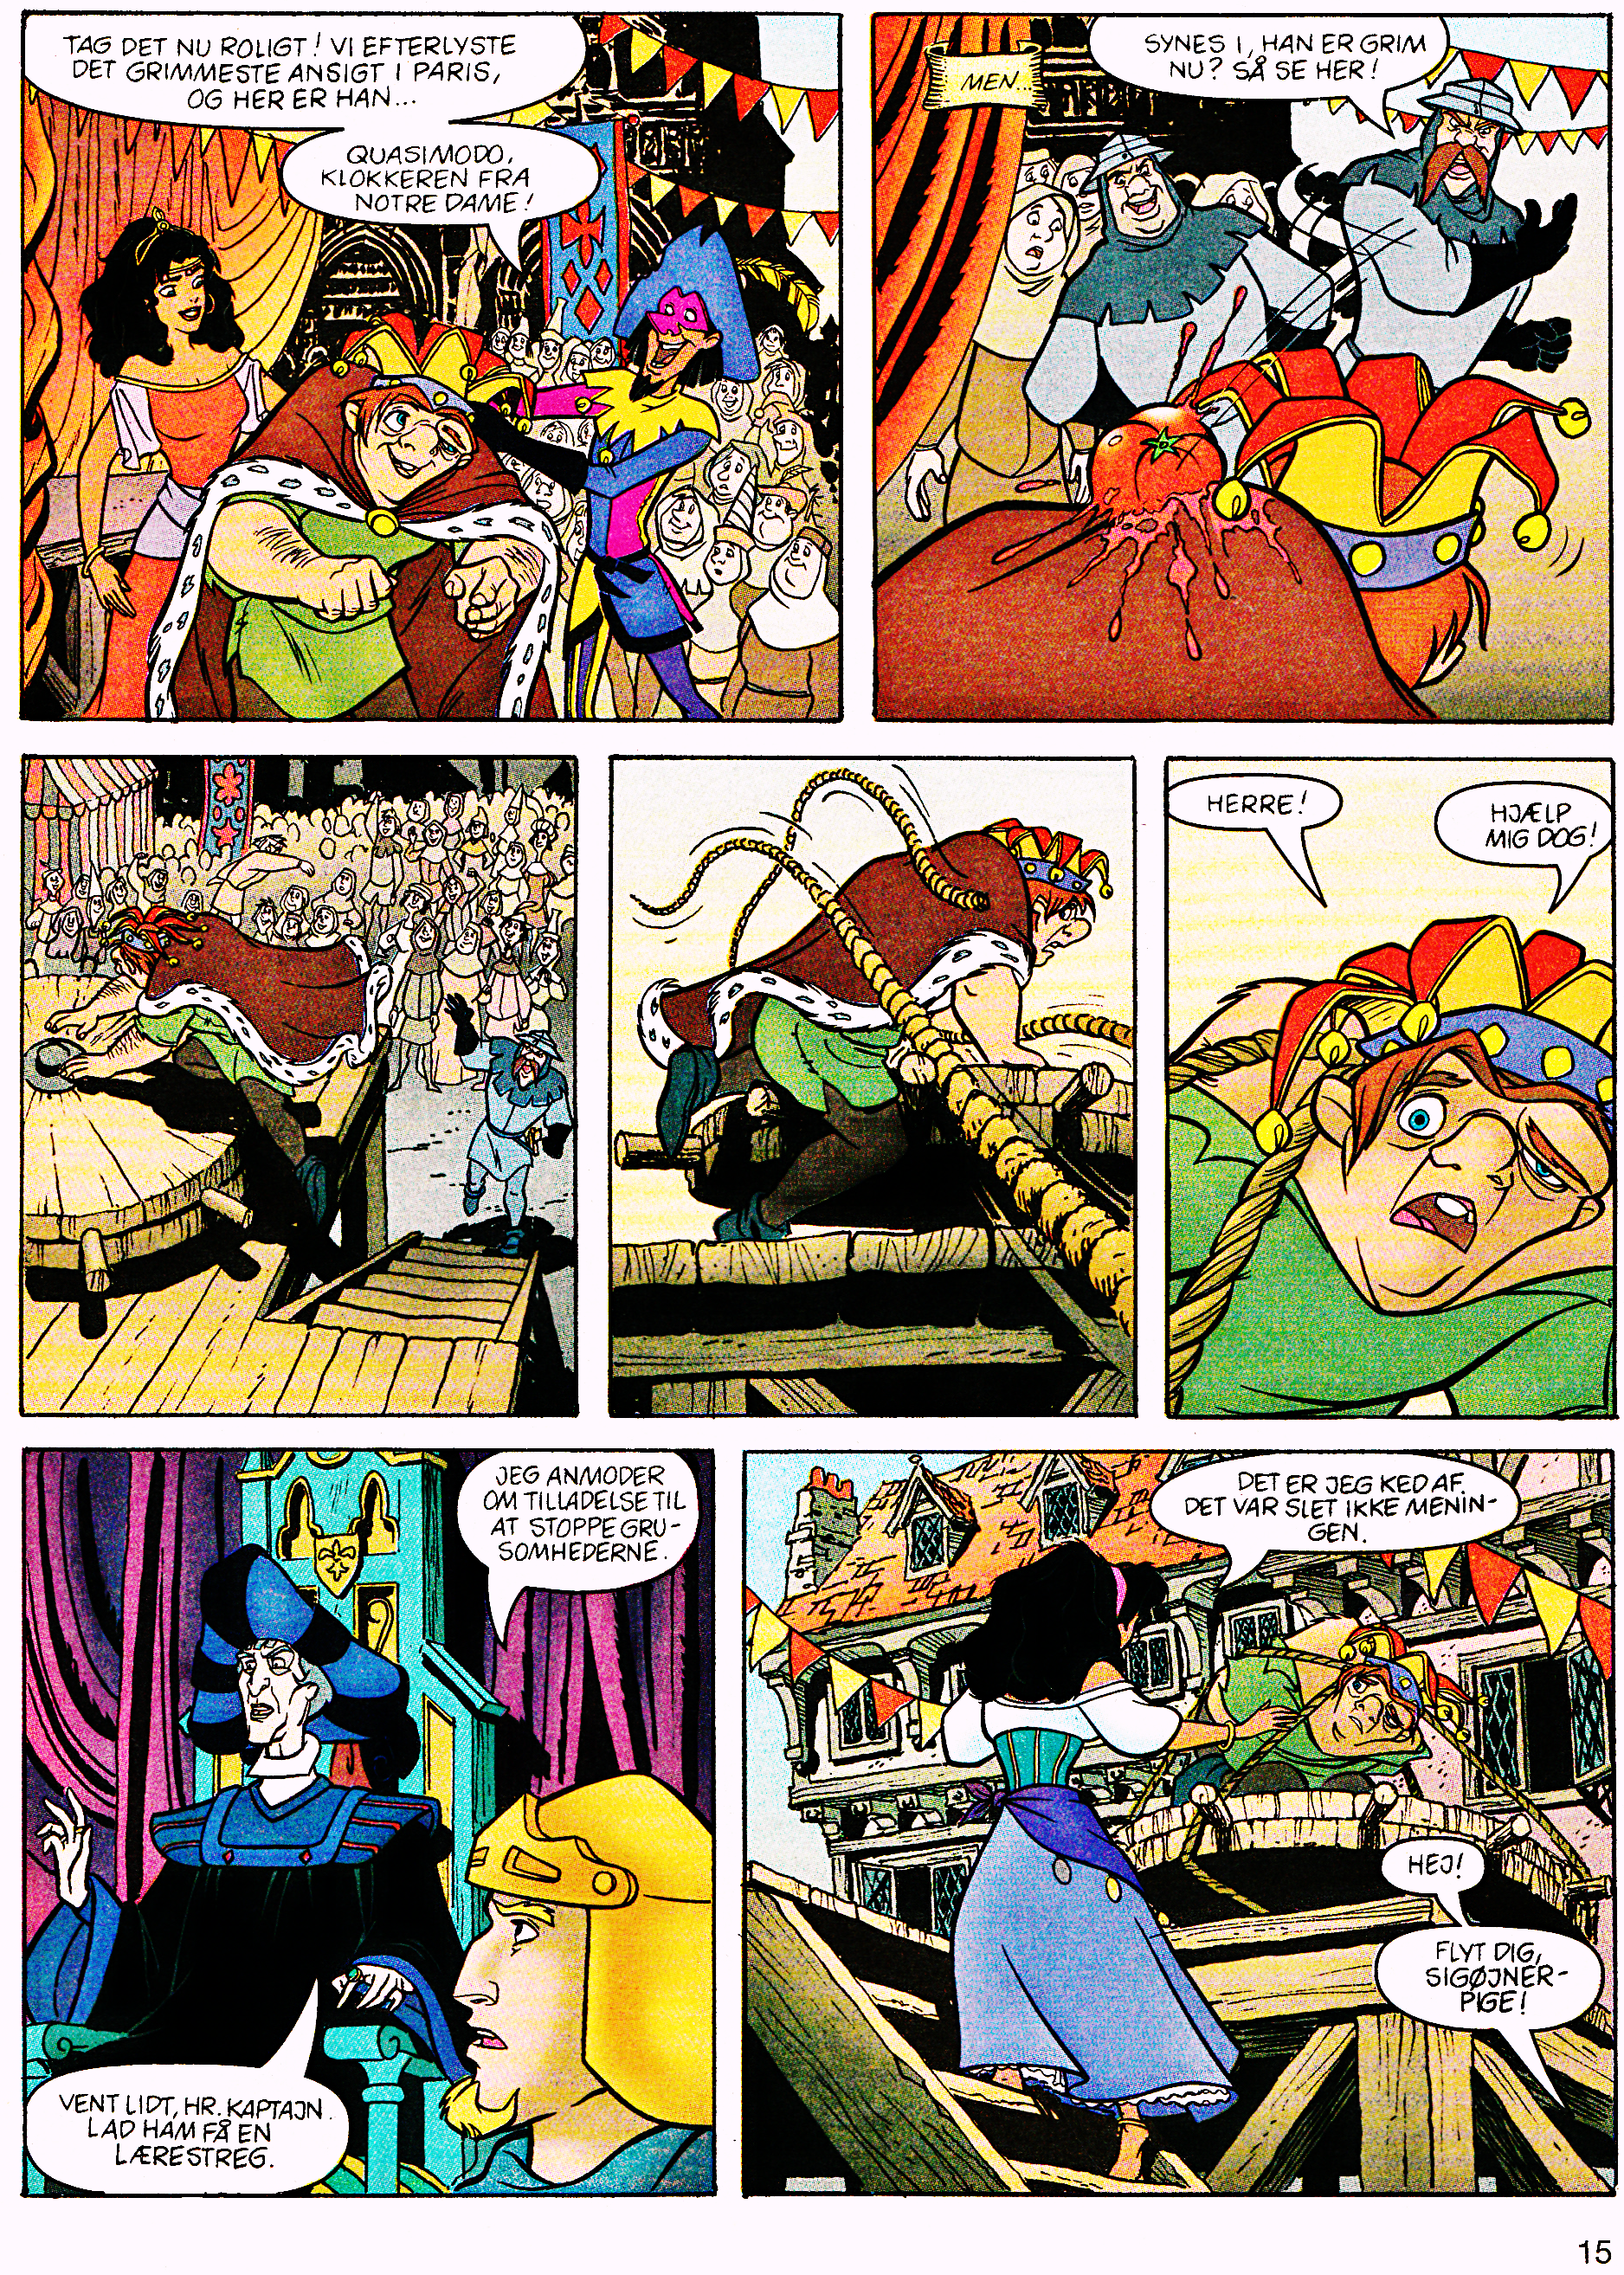 Walt ディズニー Movie Comics - The Hunchback of Notre Dame (Danish Version)